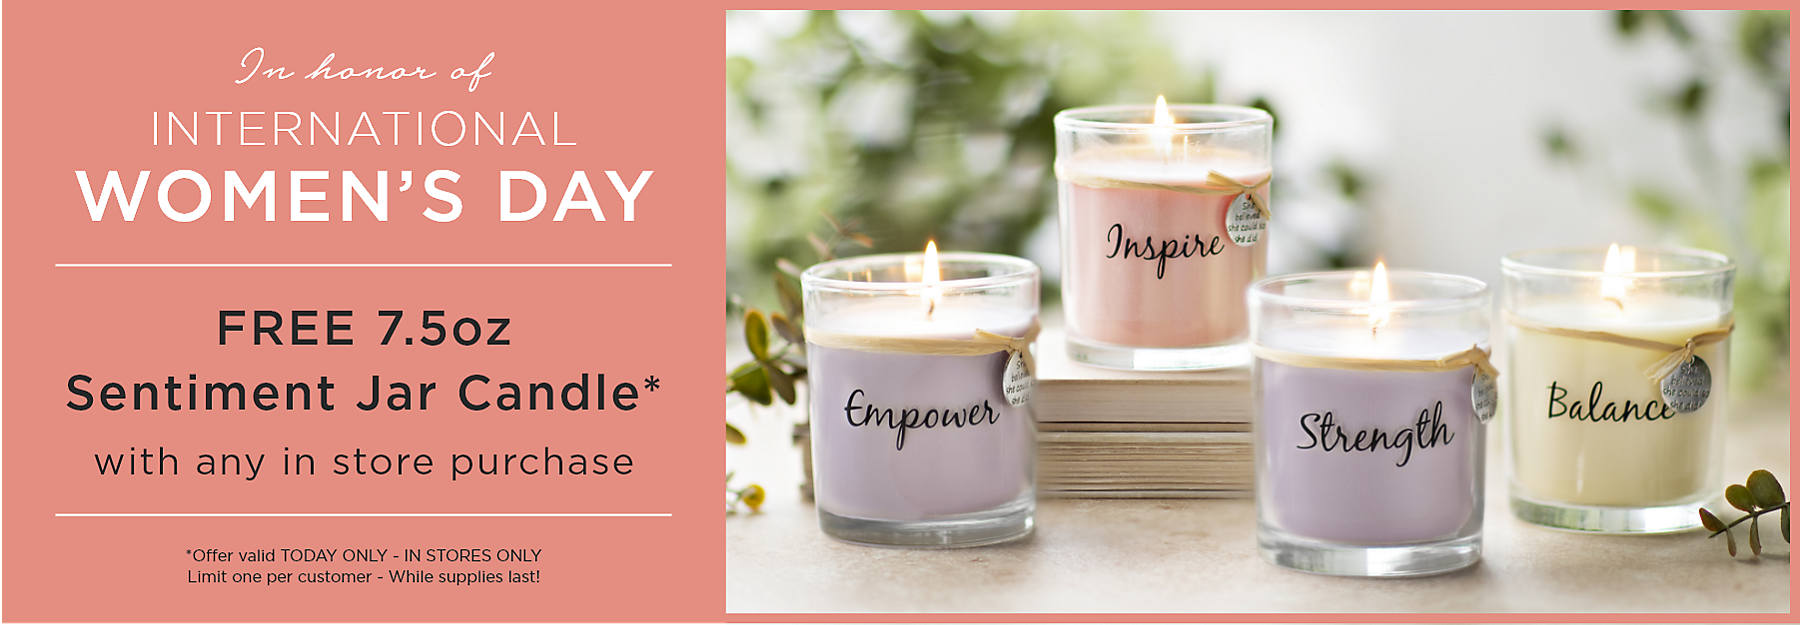 In honor of International Women's Day Free 7.5oz Sentiment Jar Candle with any in store purchase Offer valid Today Only In Stores Only Limit one per customer While supplies last!